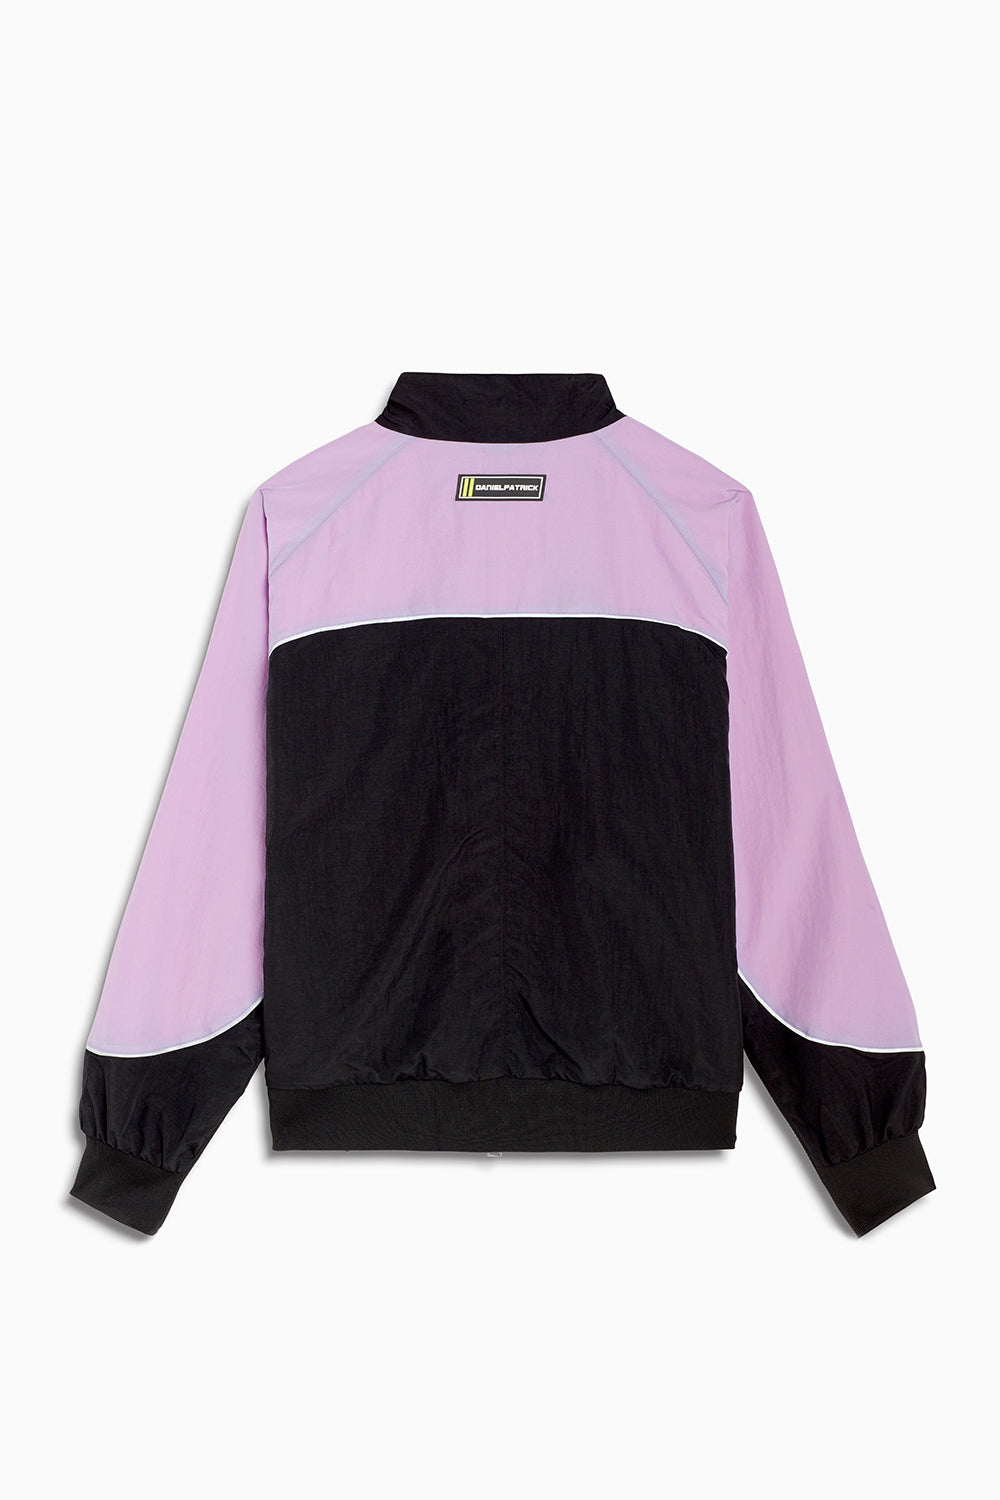 7.3M bomber / purple haze + 3m + black